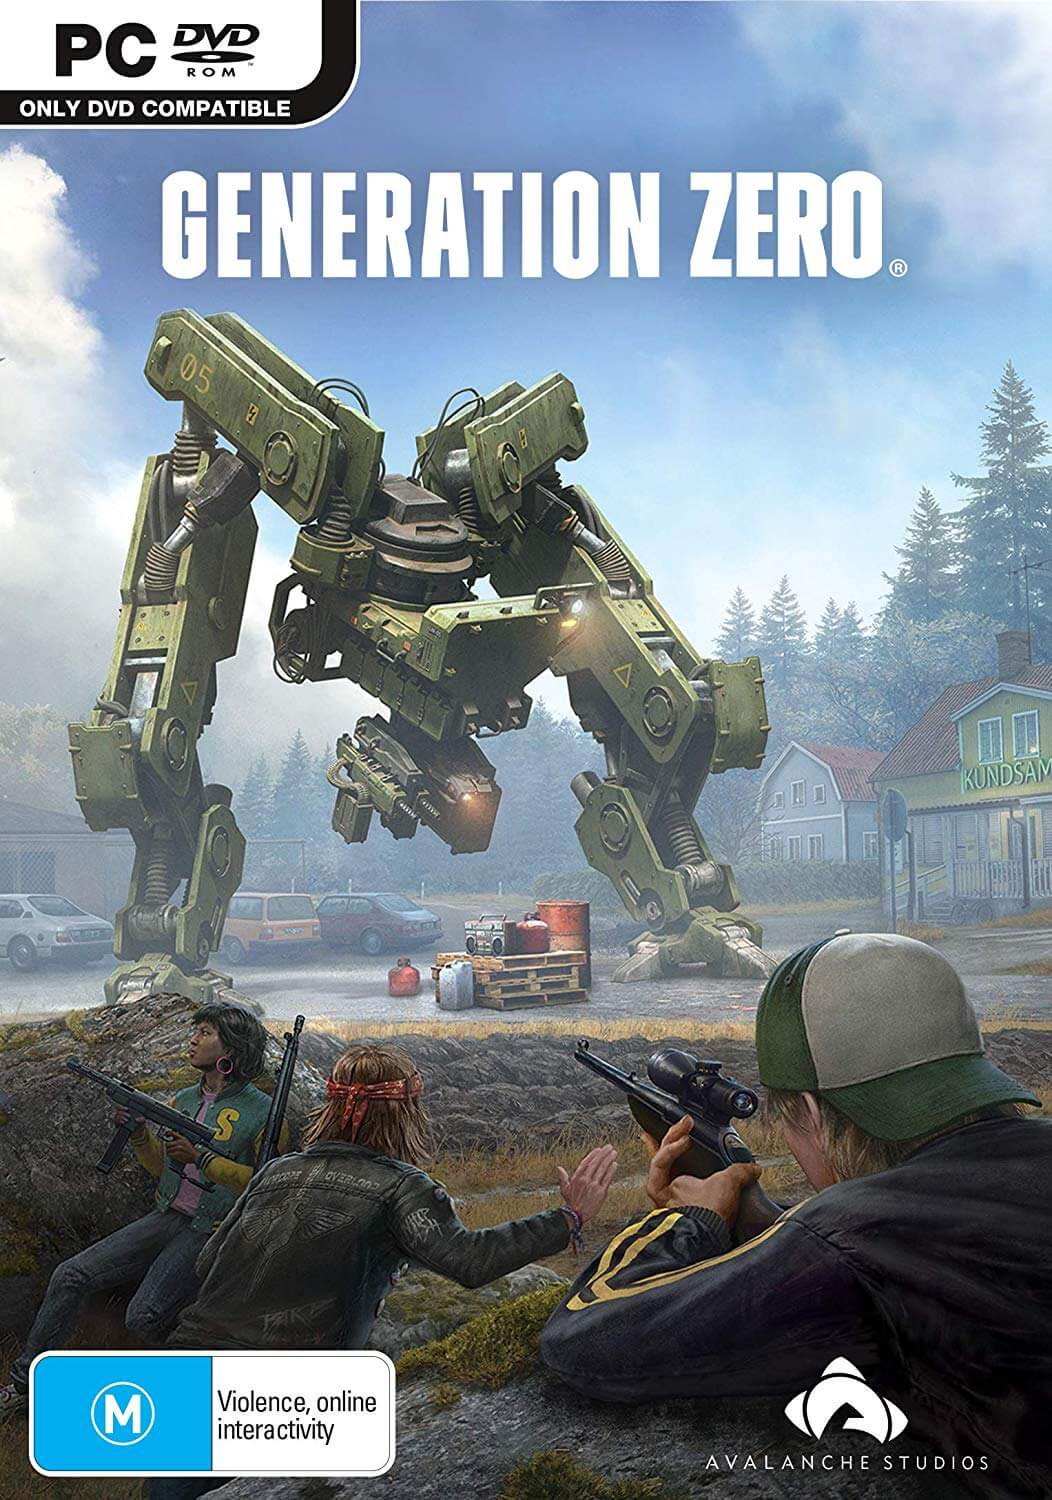 https://img5.downloadha.com/hosein/files/2019/03/Generation-Zero-pc-cover-large.jpg